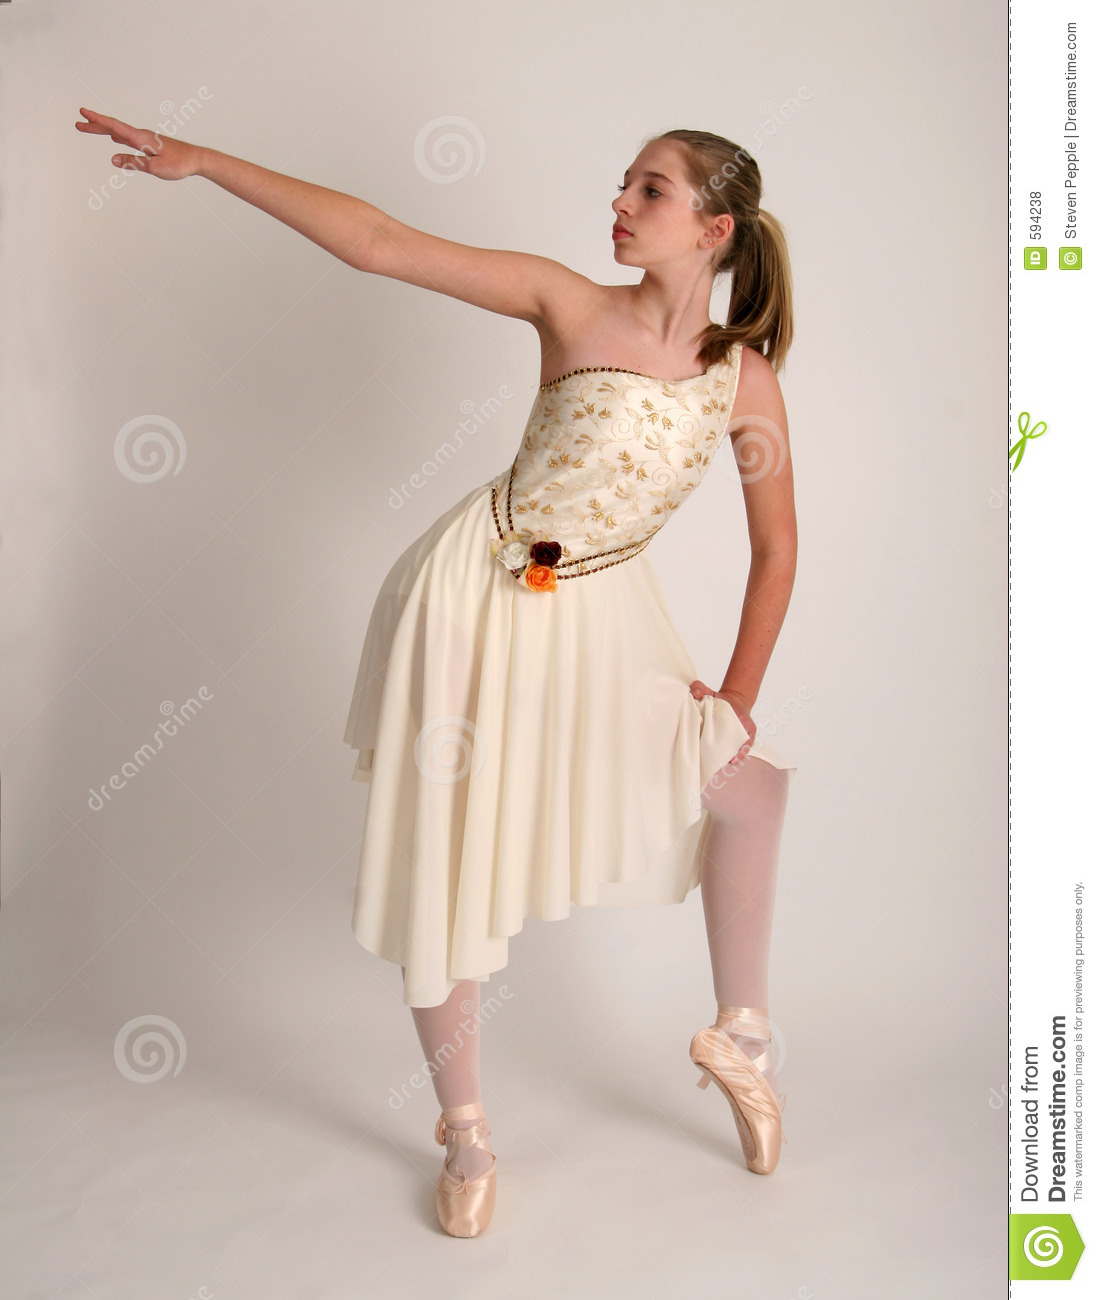 Ballet practice stock photo  Image of graceful, perform - 594238